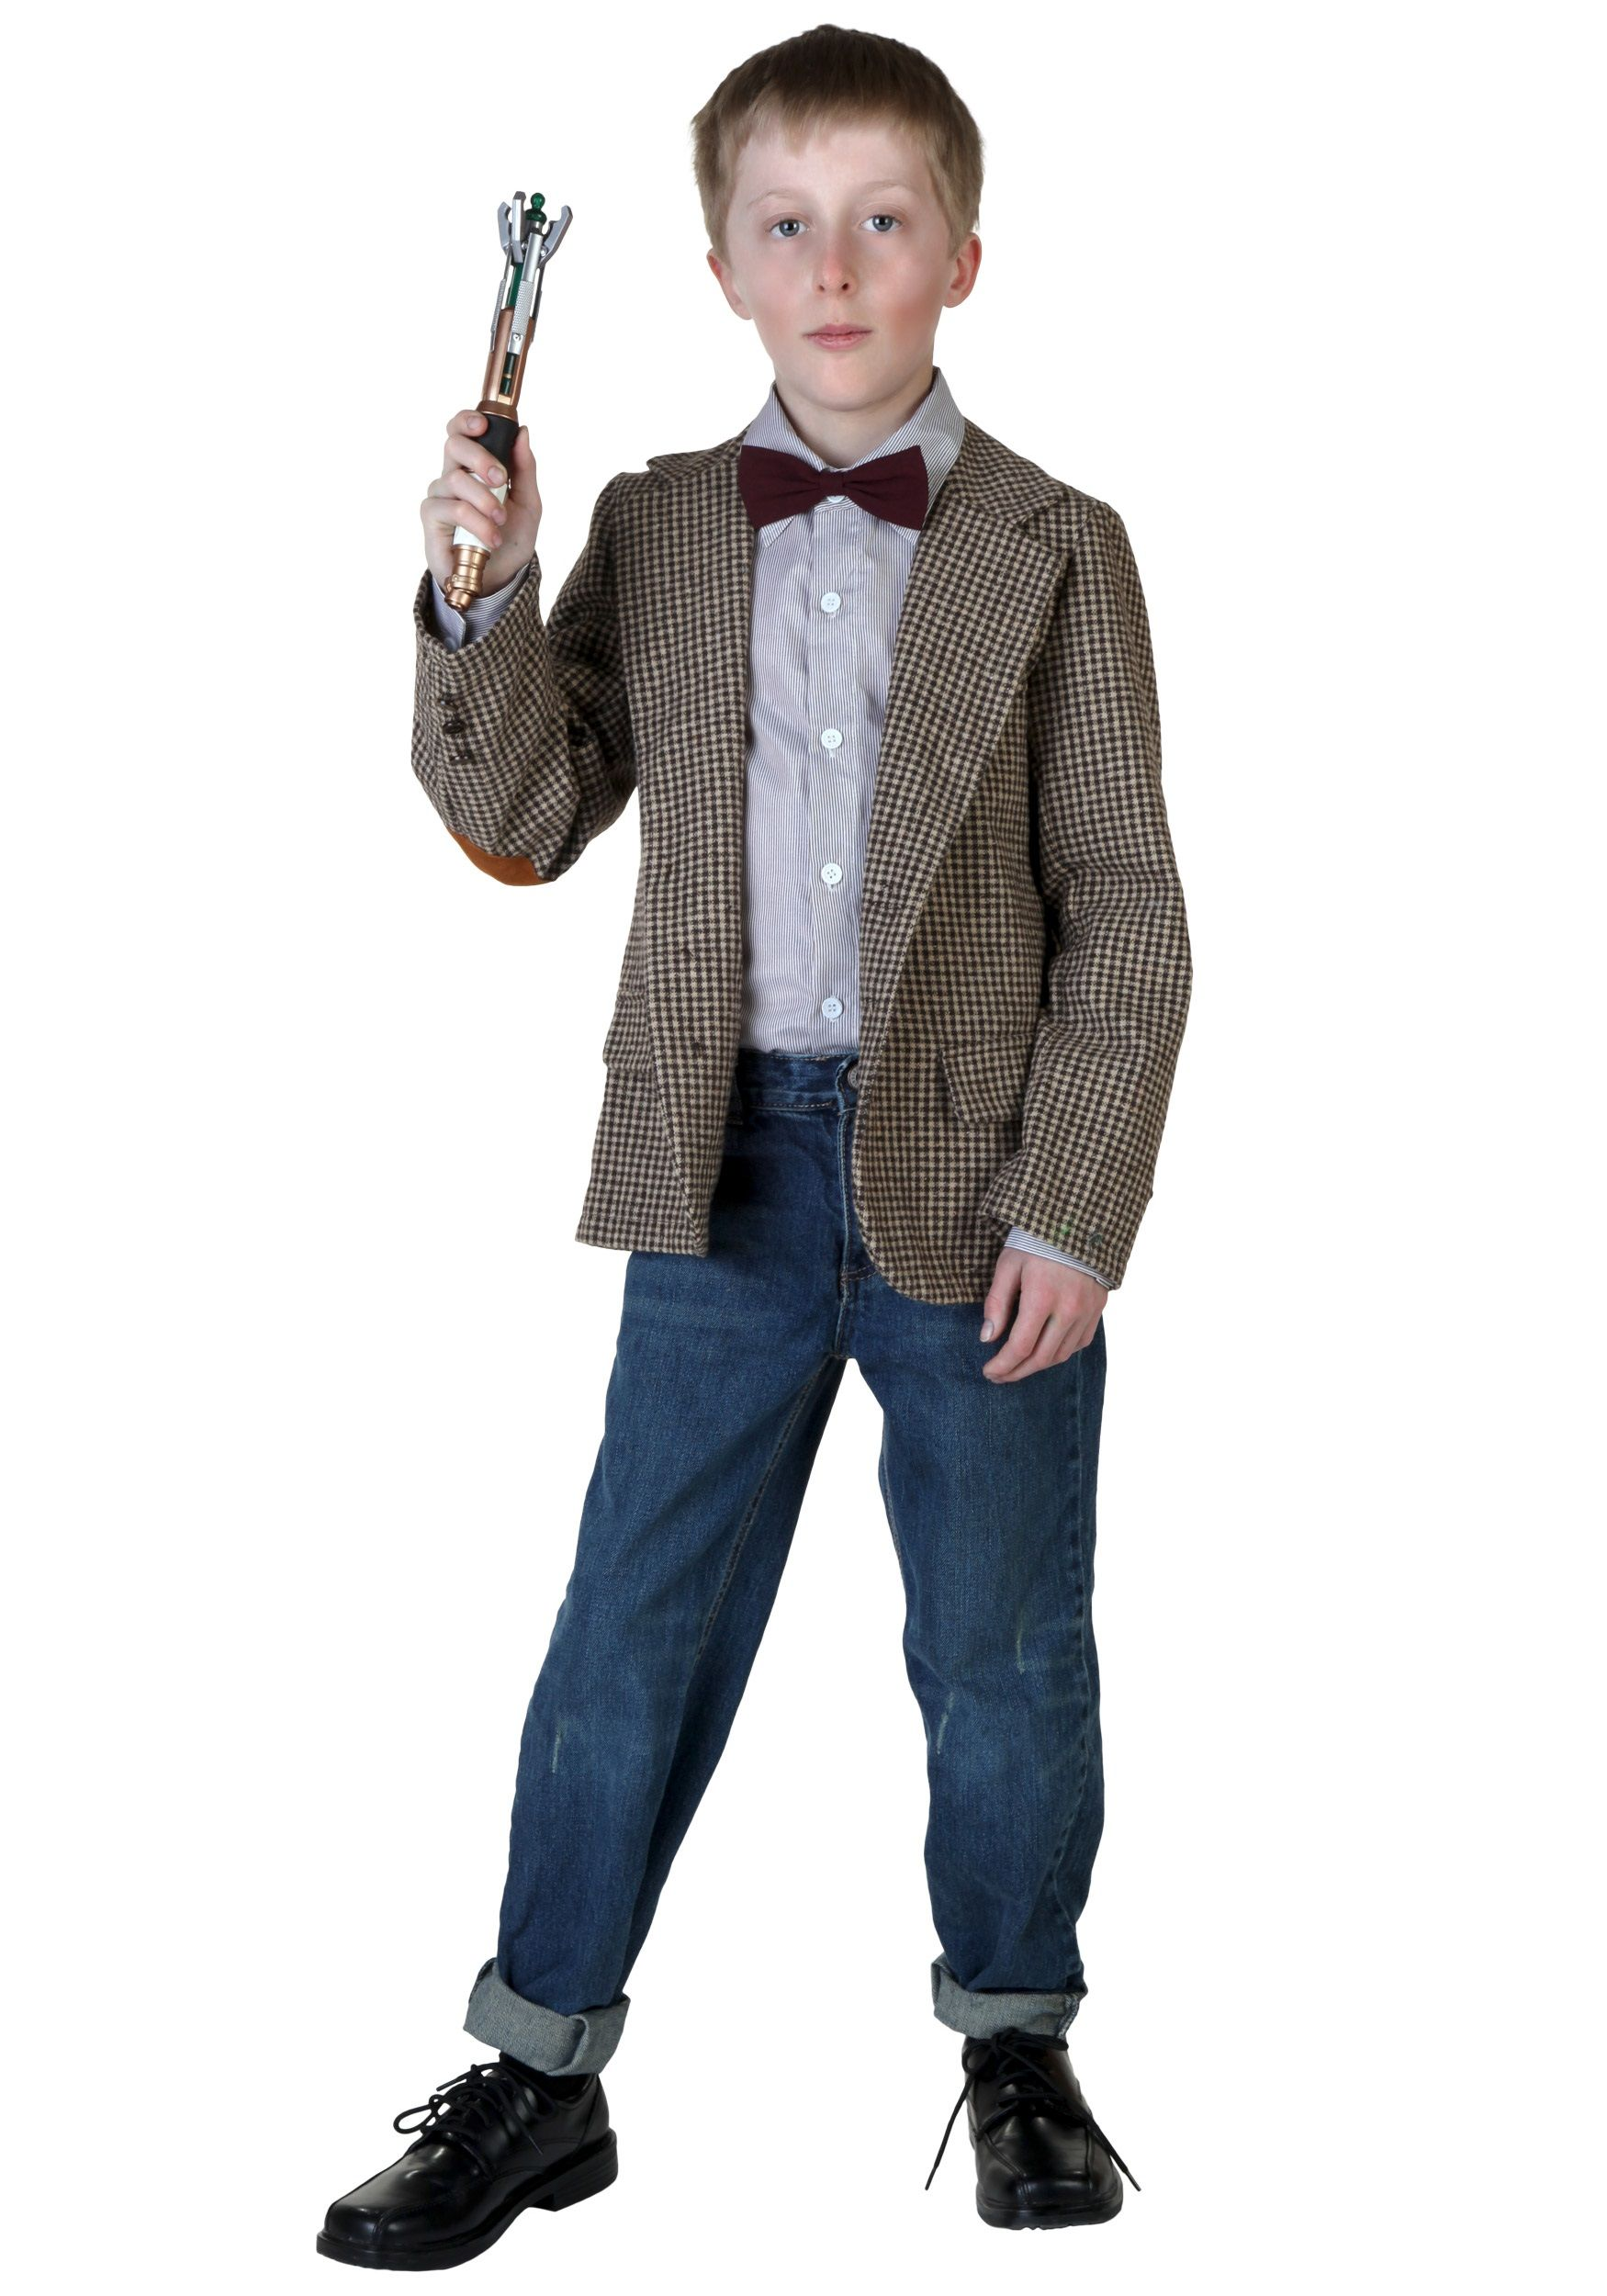 Child Doctor Professor Costume with Free Shipping in U.S. UK Europe Canada | Order Child Doctor Professor Costume For Halloween 2015!  sc 1 st  Pinterest & Child Doctor Professor Costume | Pinterest | Children doctor ...